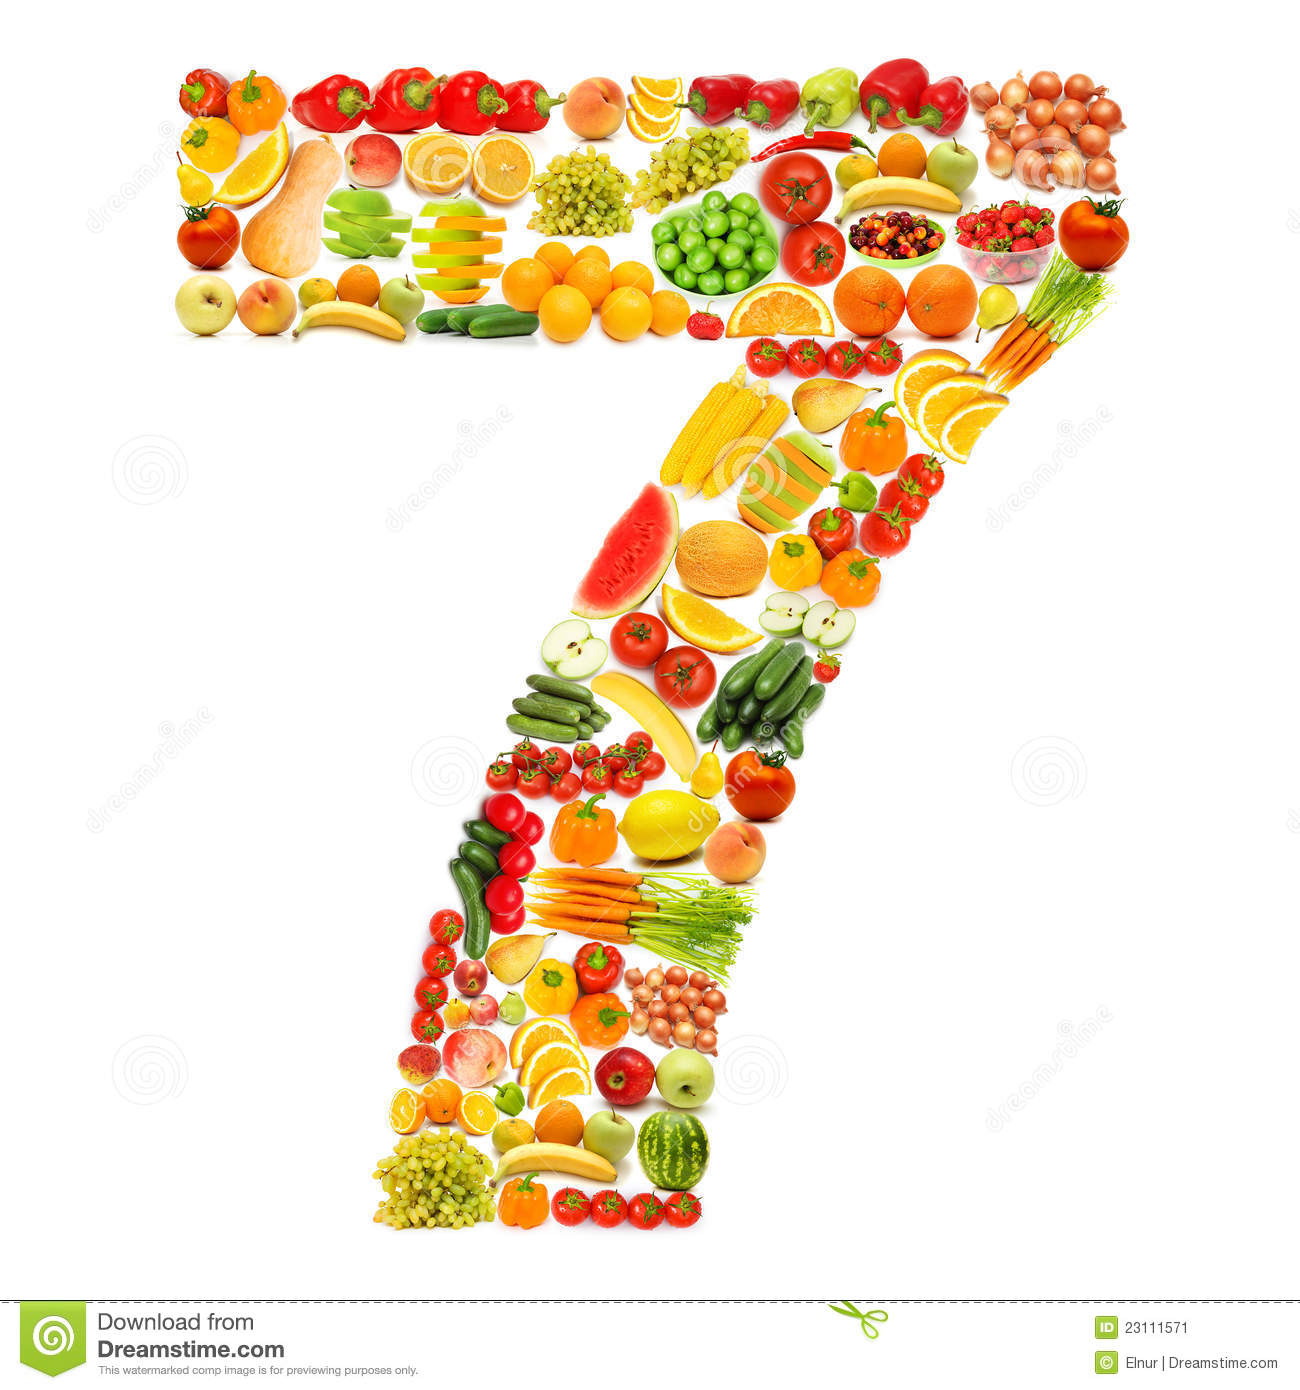 Alphabet Made Of Fruits And Vegetables Stock Image - Image ...